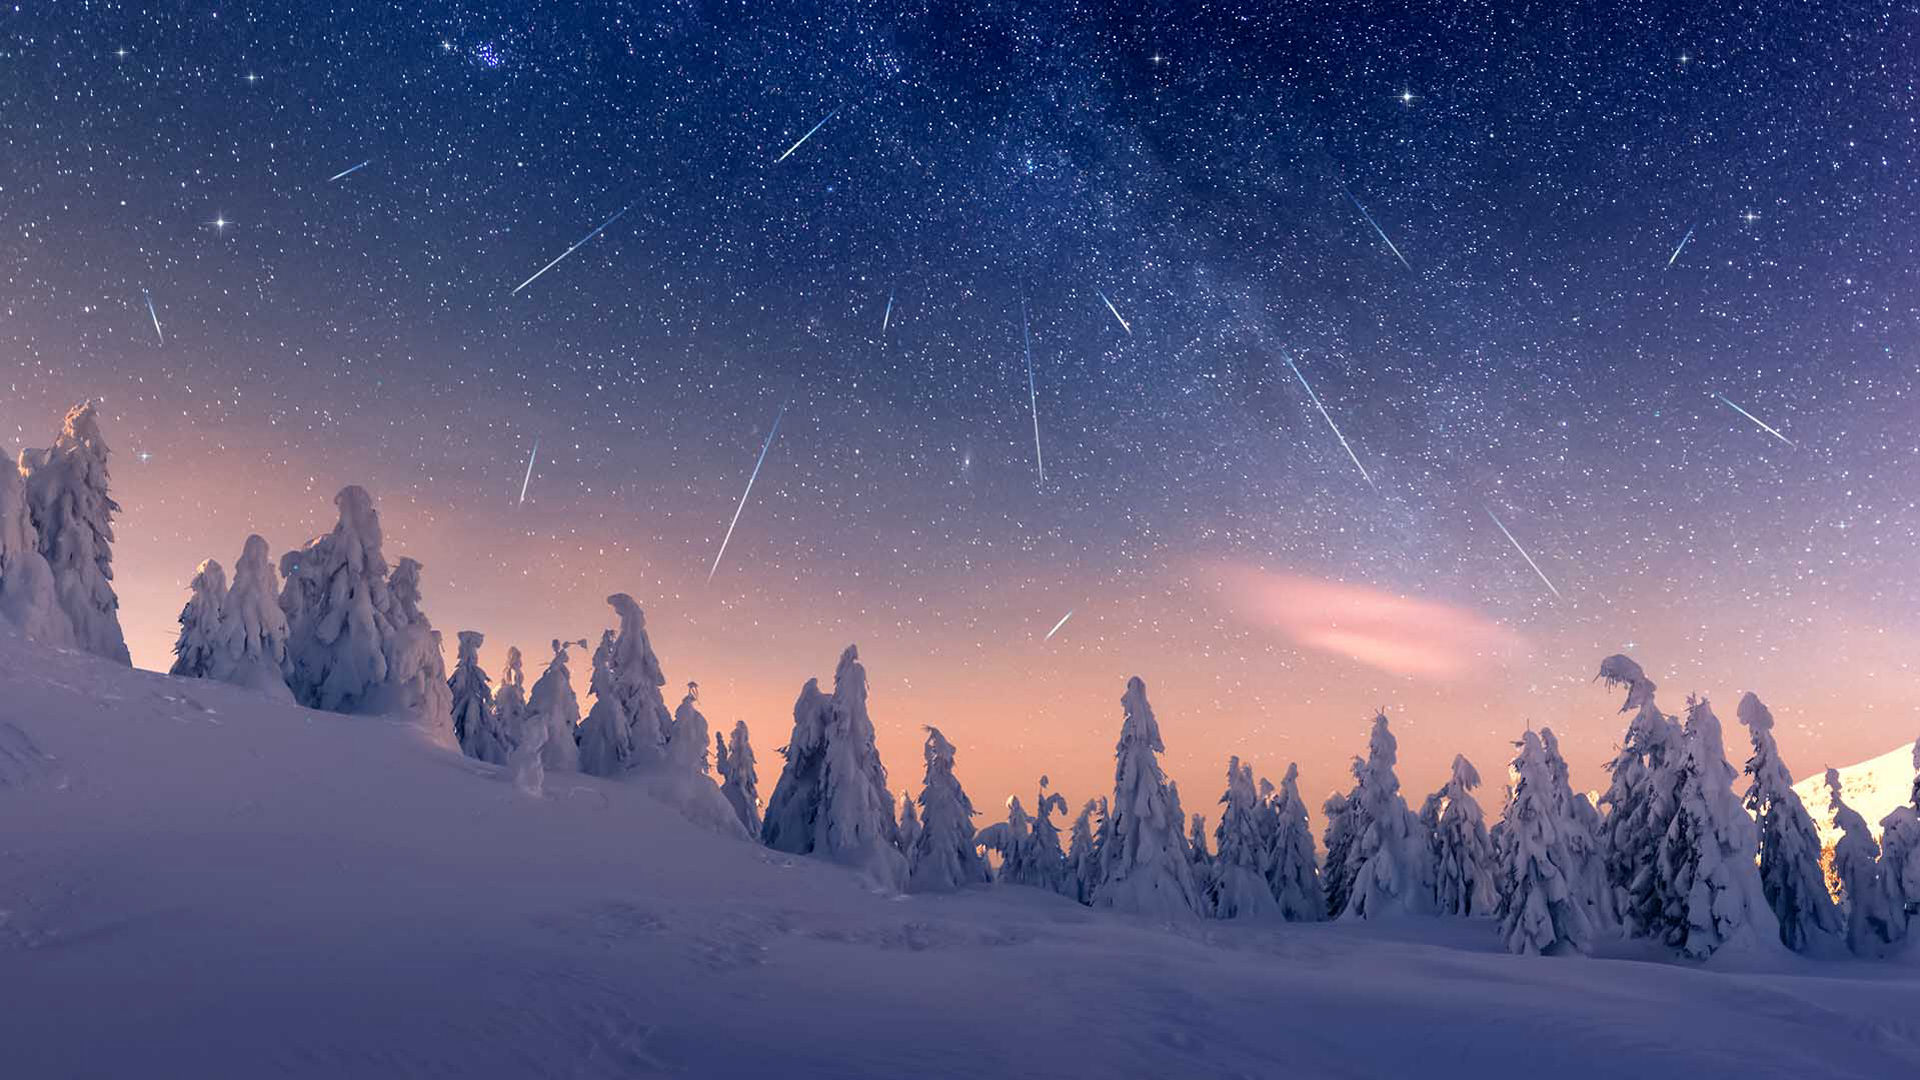 Snow covered trees and meteor in the sky